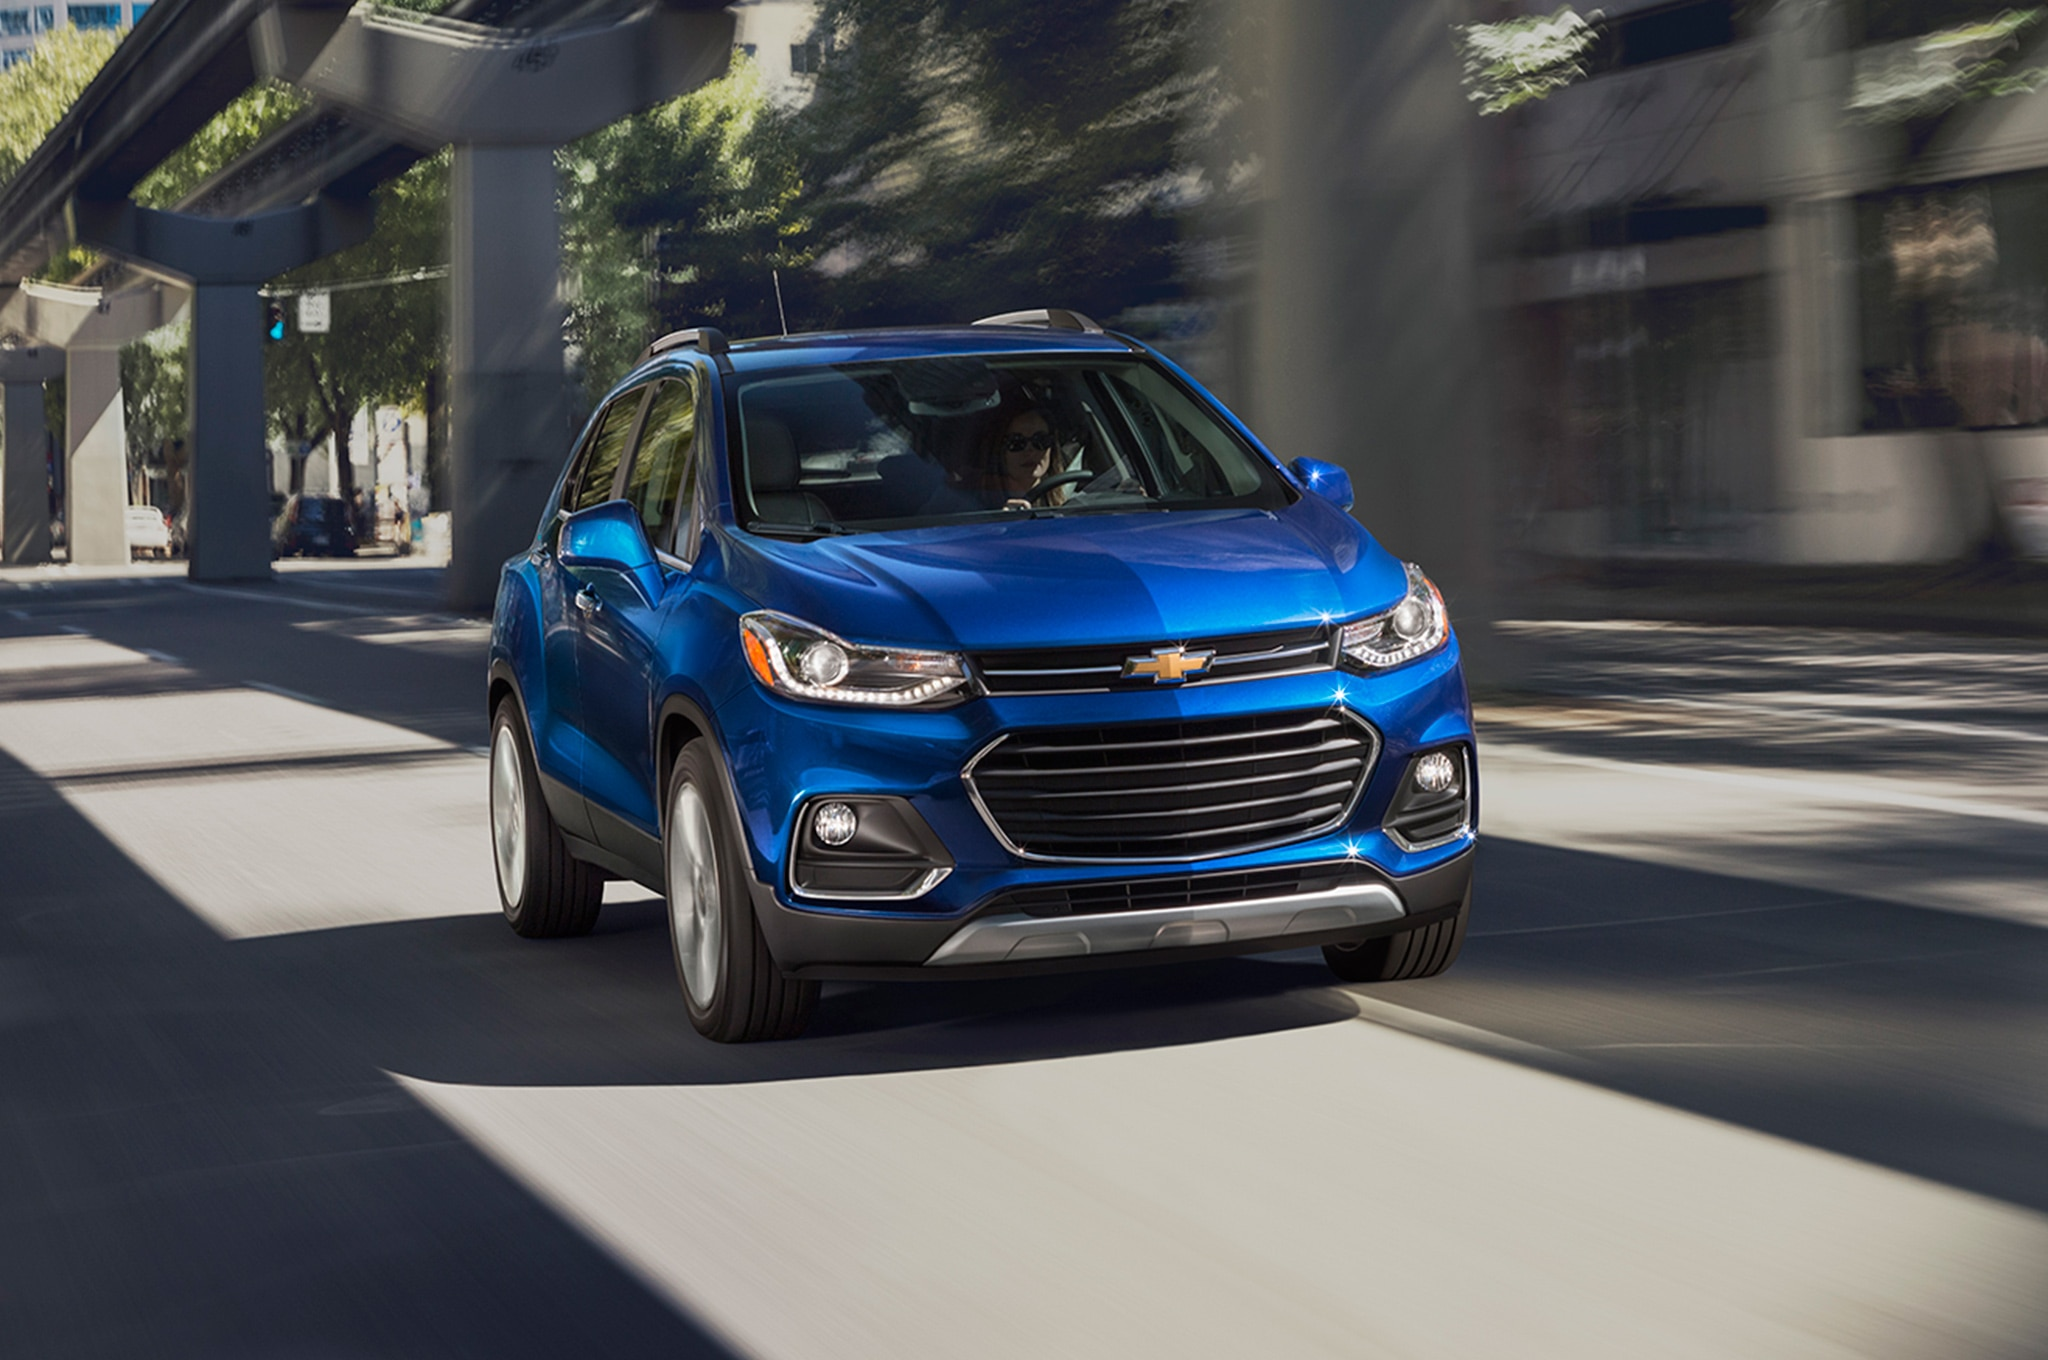 2017 Chevrolet Trax Front End In Motion